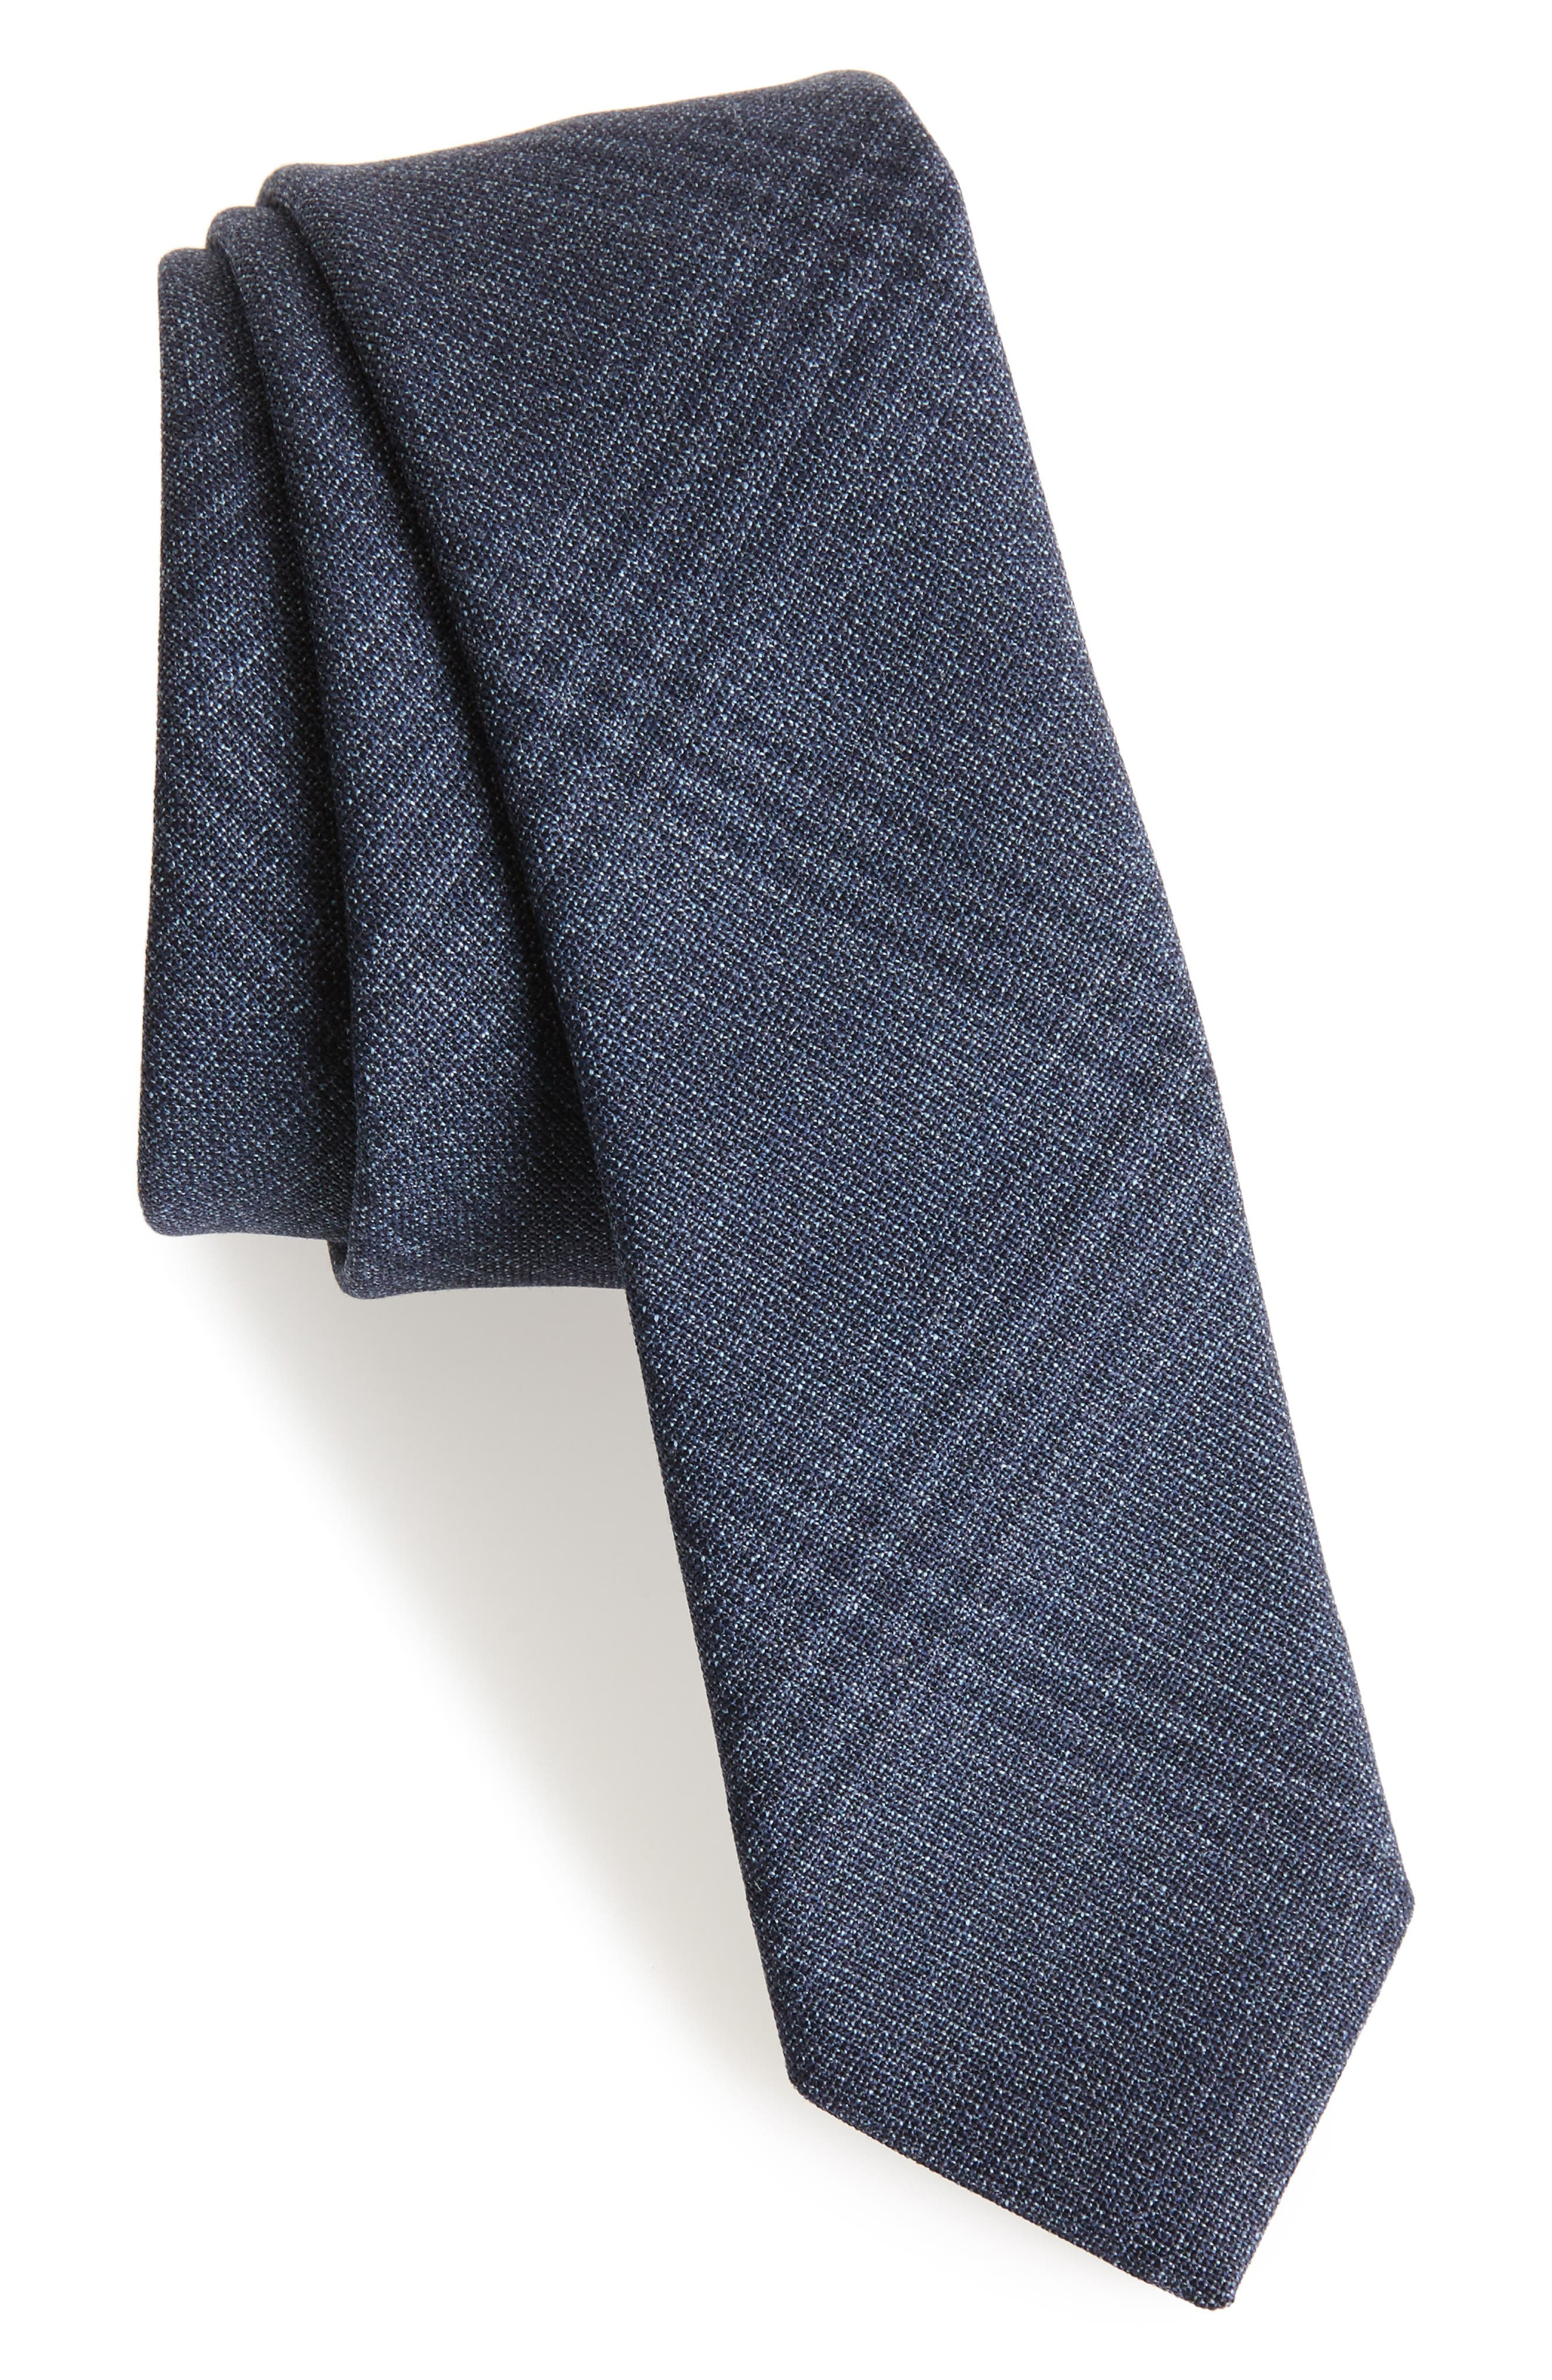 Plaid Wool Tie,                             Main thumbnail 1, color,                             031